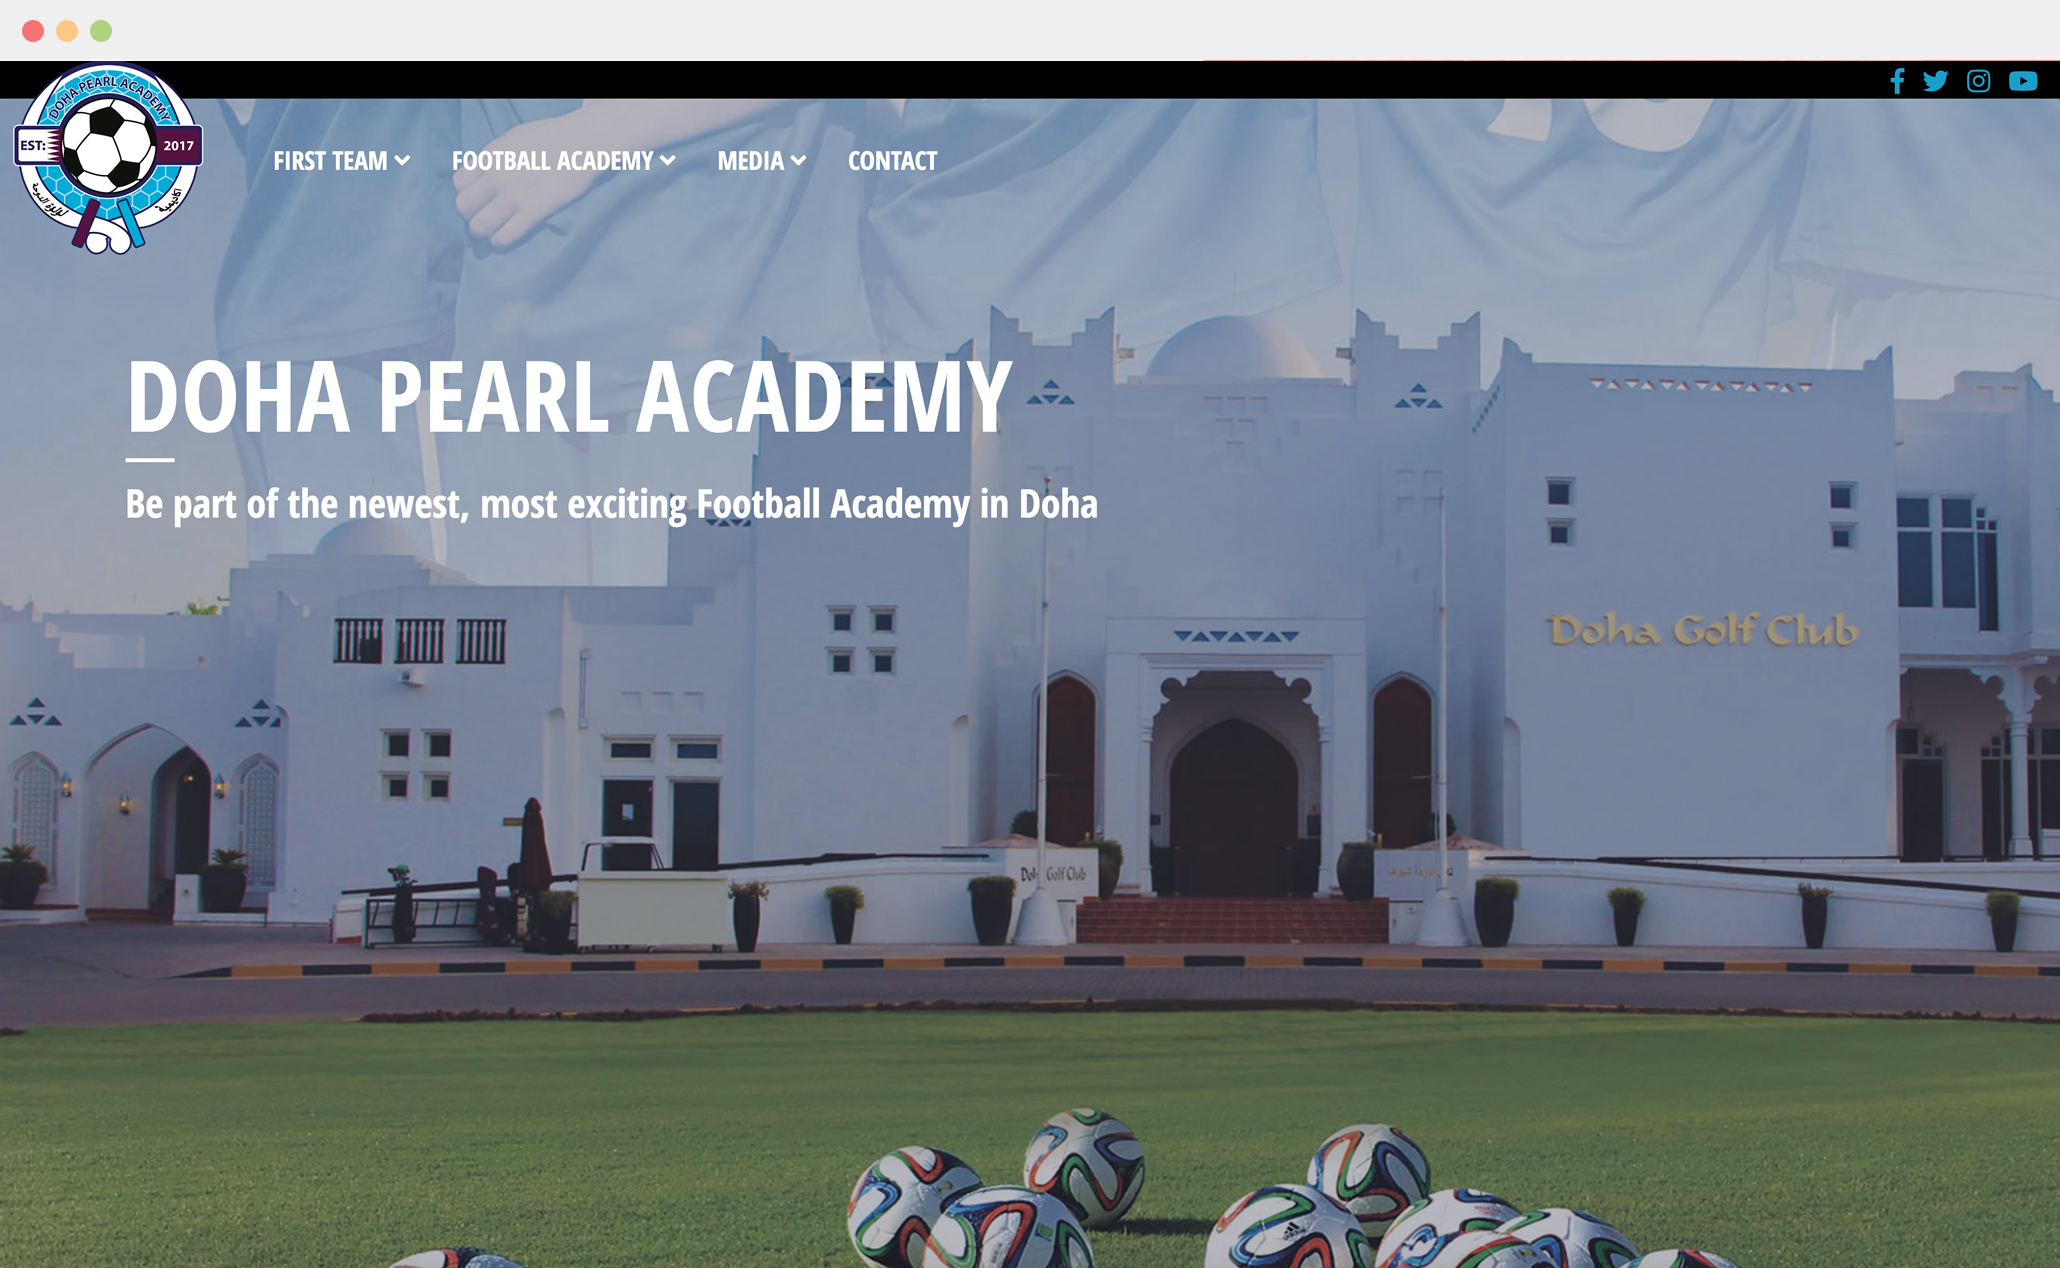 <p>Doha Peal are one of the top football teams in Doha who recenty established the newest and best football academy in Doha. Their website required an update to reflect their new brand and separate the first team section from the new football academy. We were able to develop a new, responsive website that stood out and made a real impact for the launch of the academy and to start of the 2018/19 season.</p>